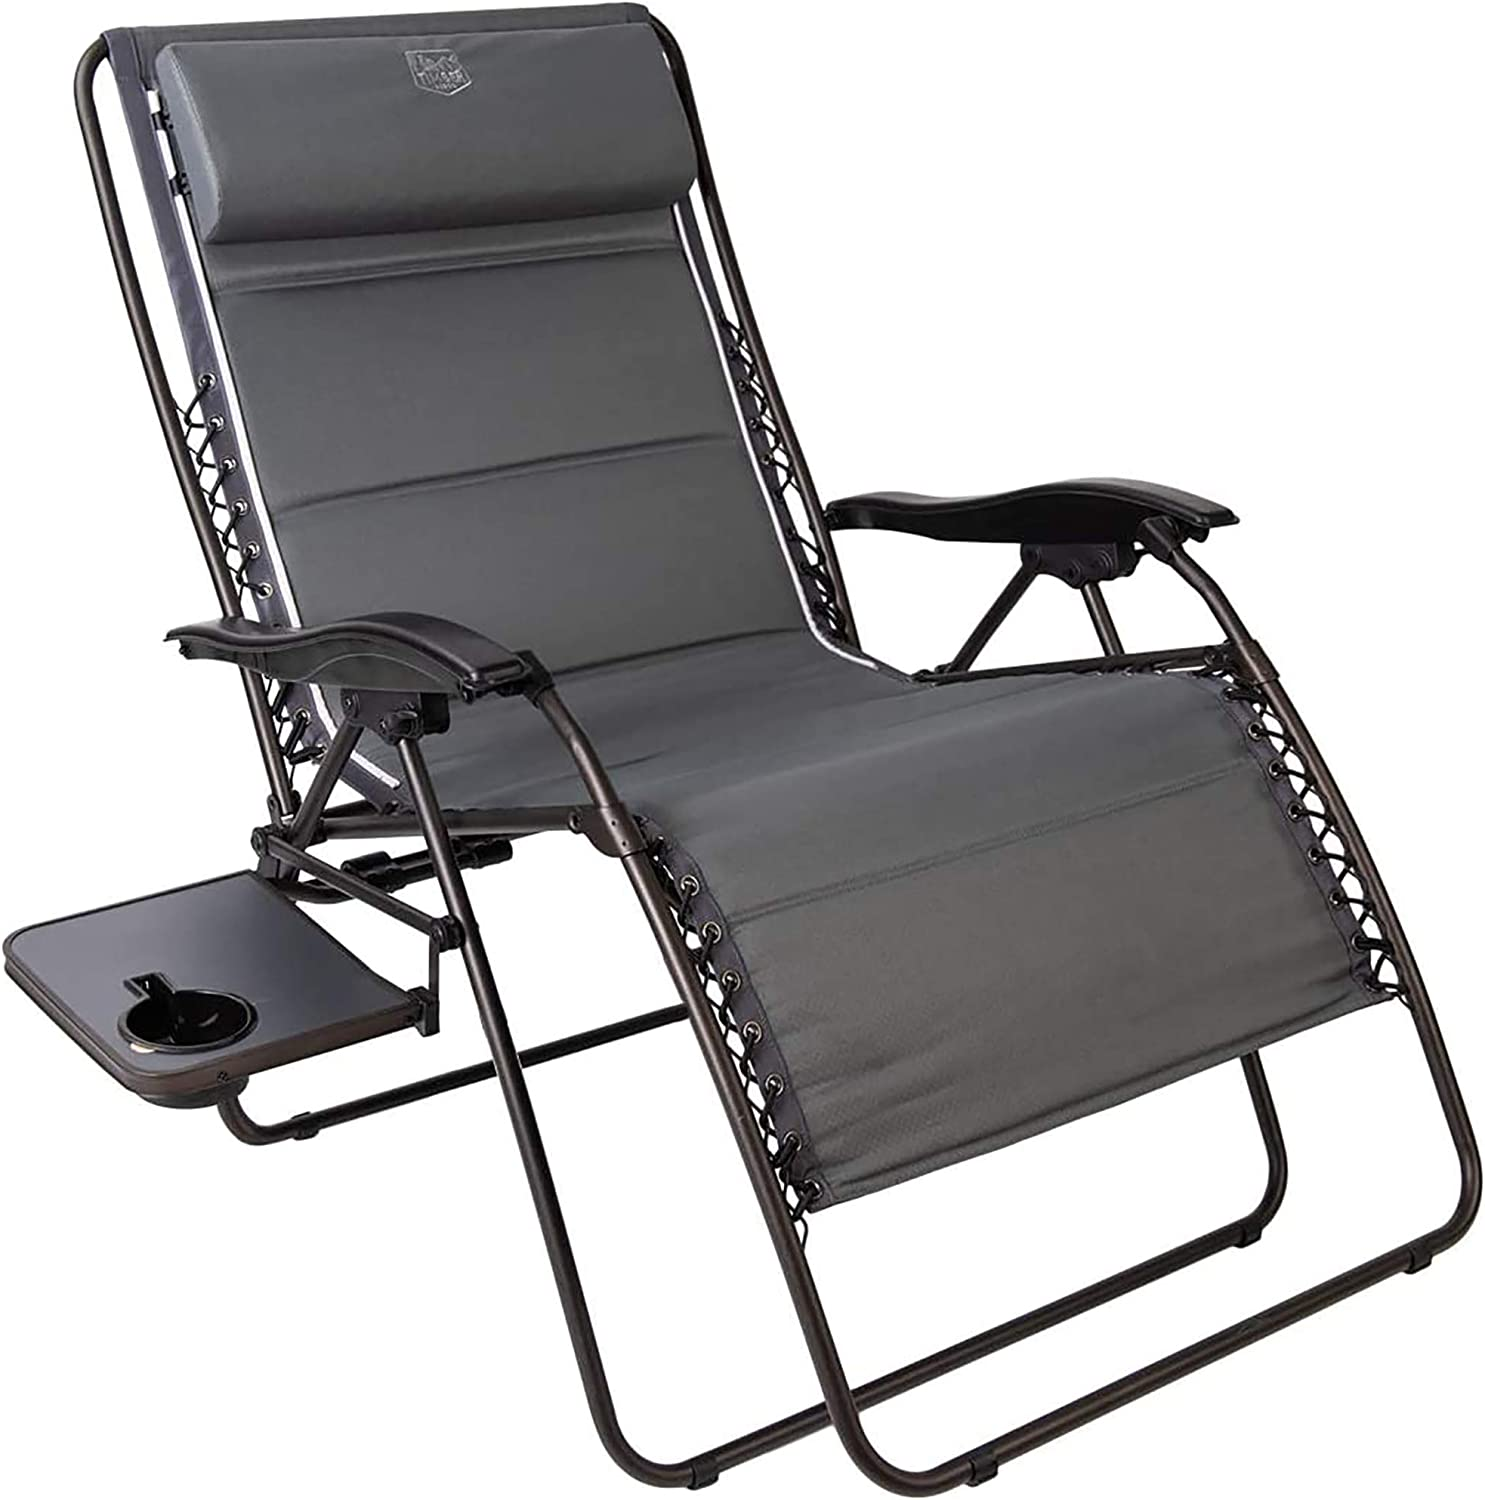 Best Beach Chair for Big Guys